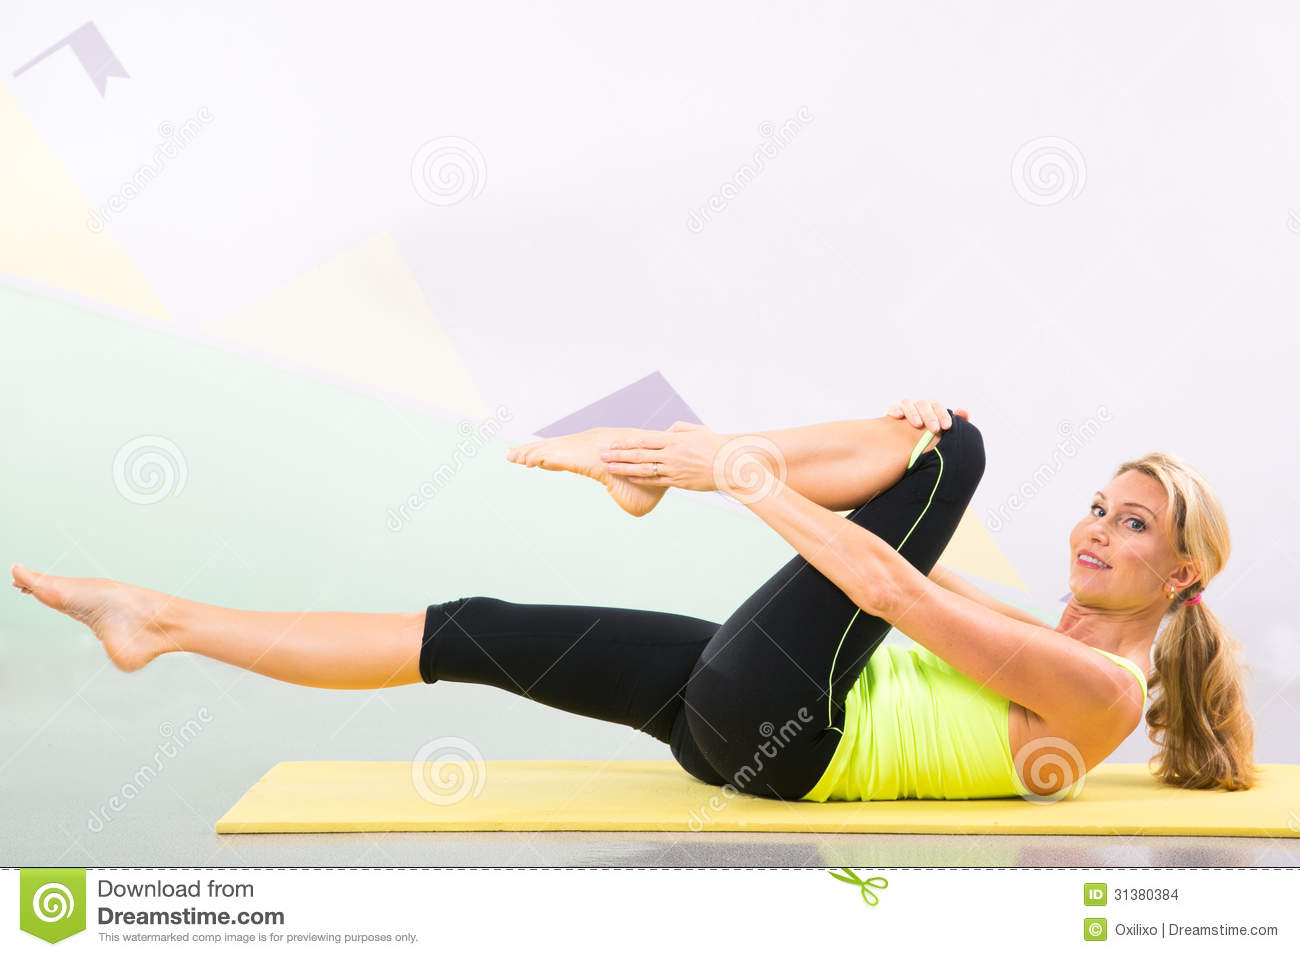 Beautiful Pilates Instructor With Yellow Yoga Mat Stock Images - Image: 31380384